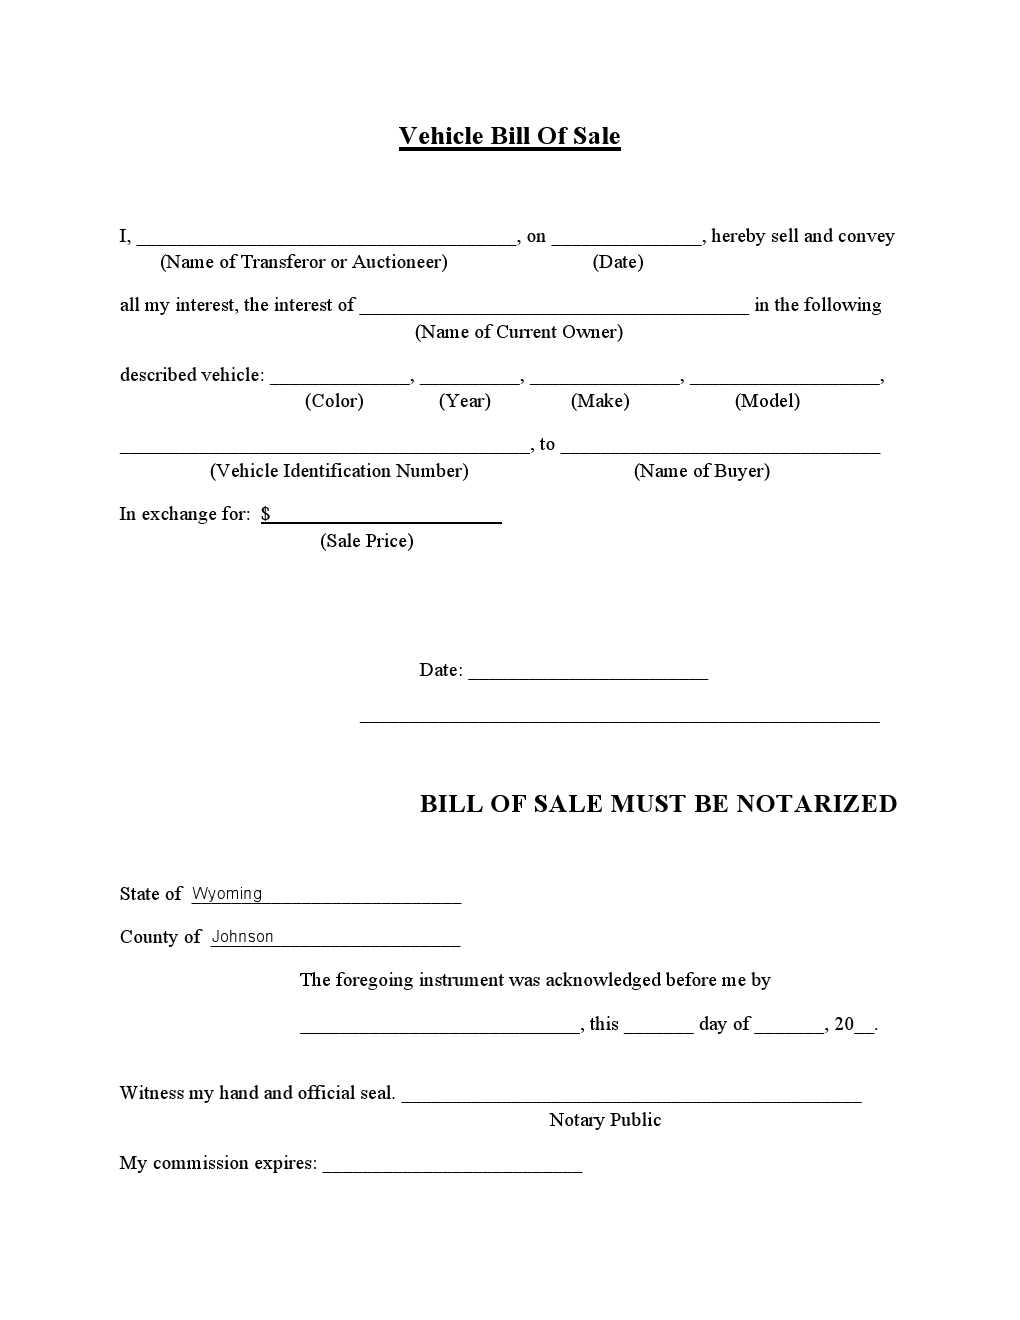 free johnson country vehicle bill of sale form download